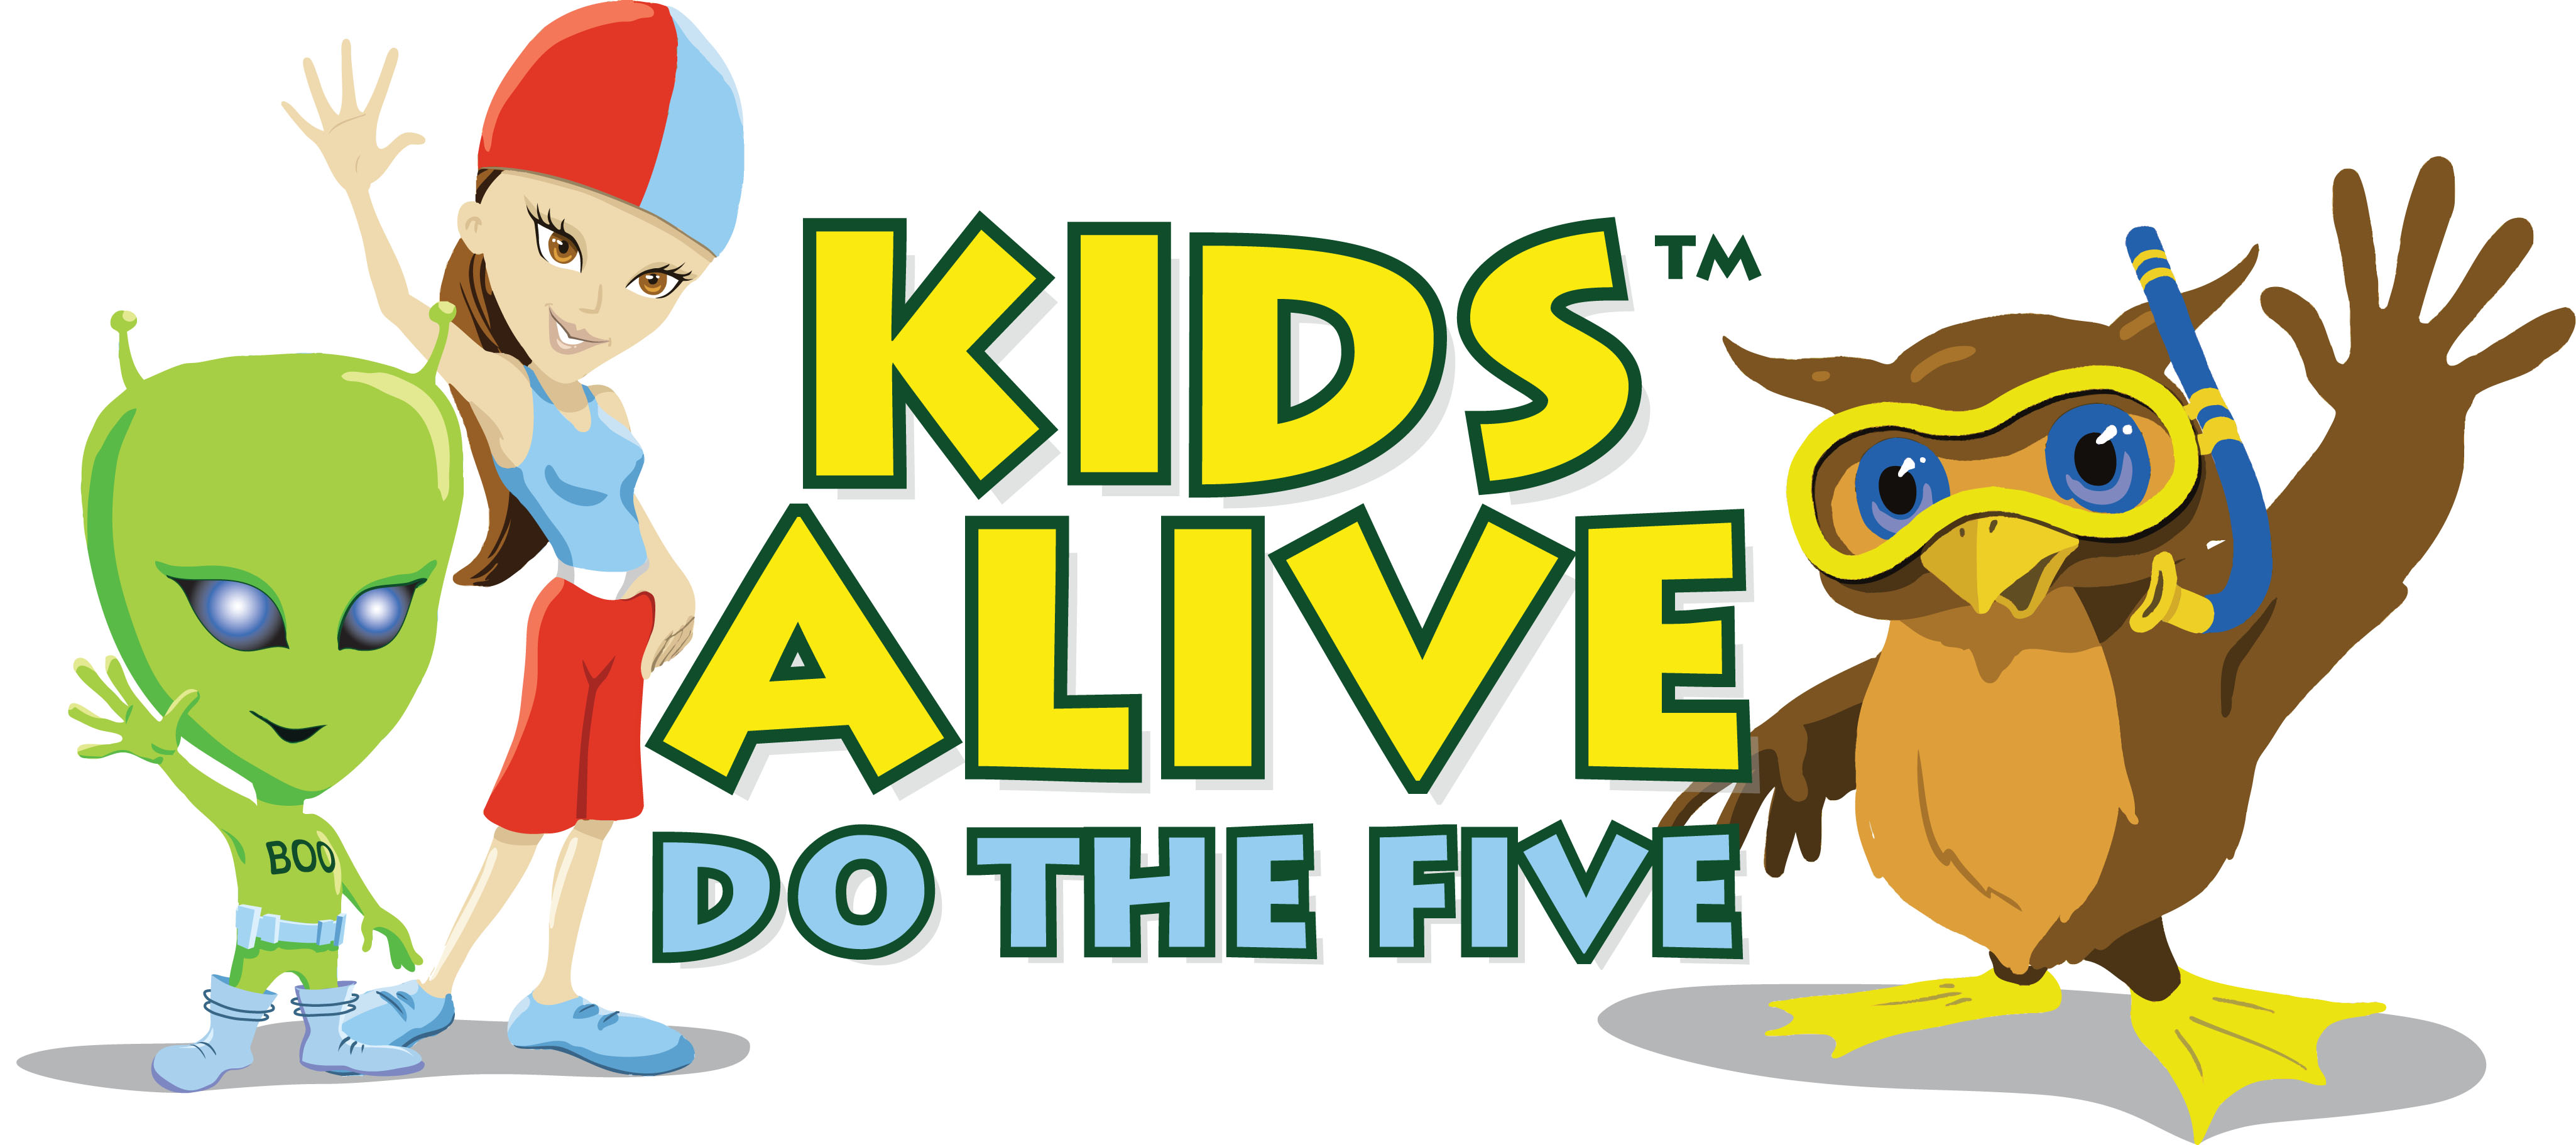 Kids Alive. Do the Five.